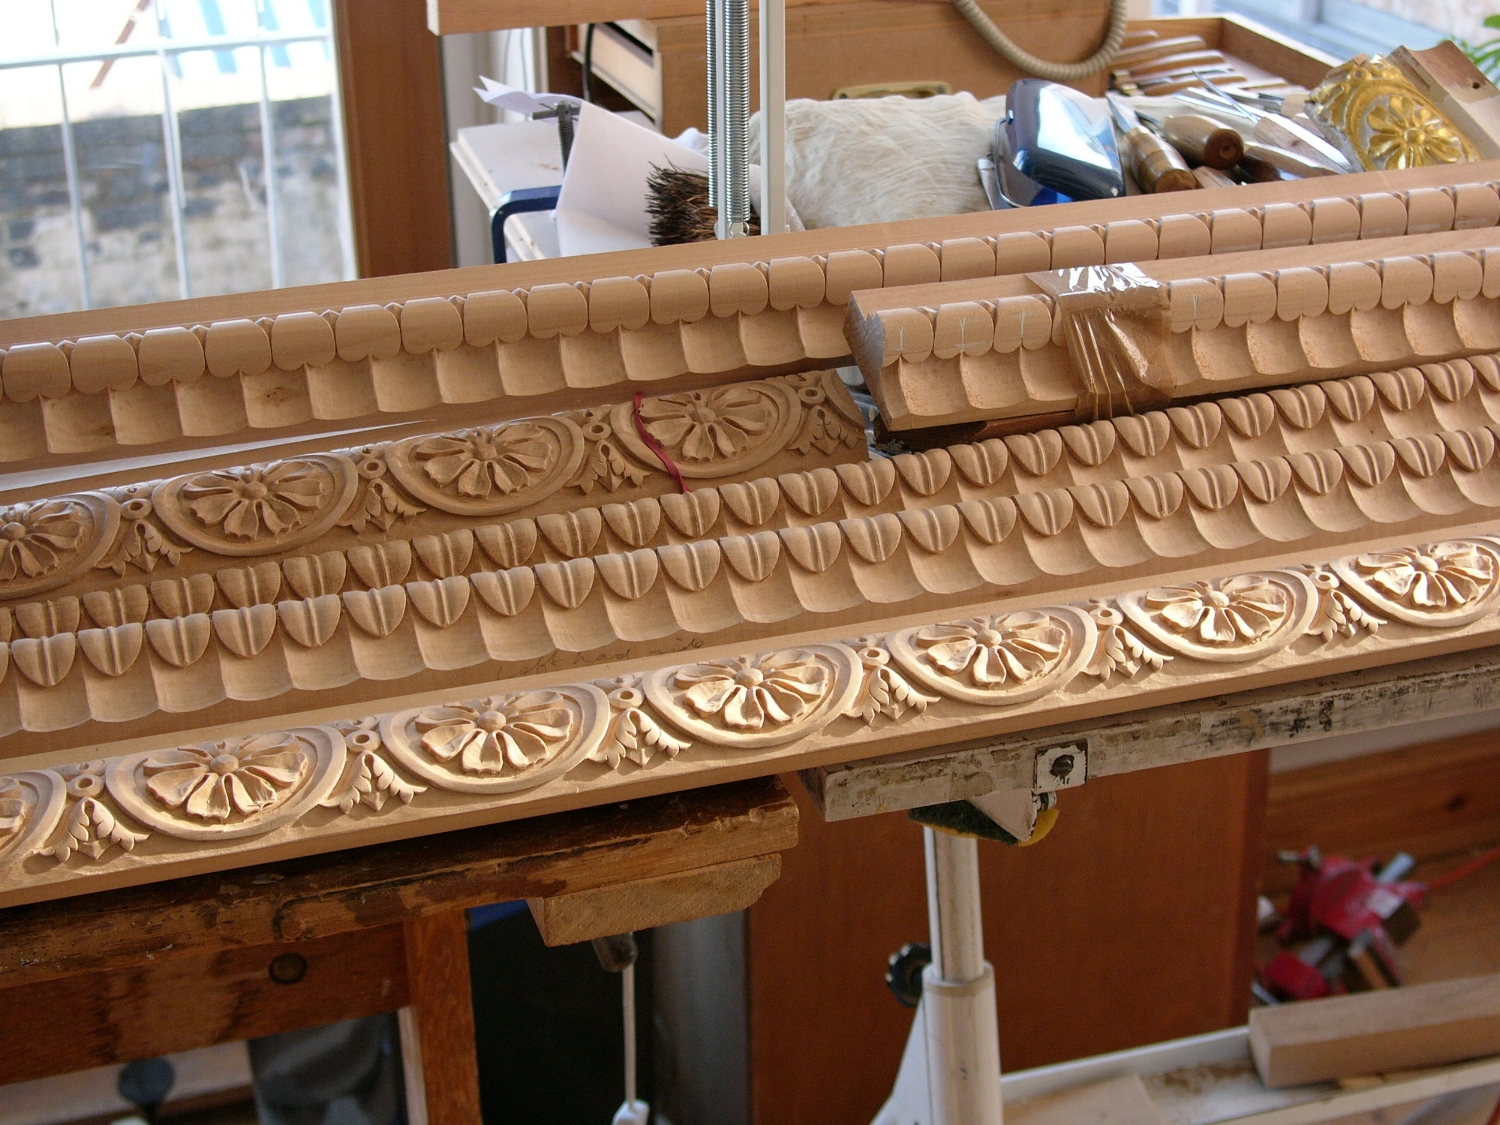 Carved moulding